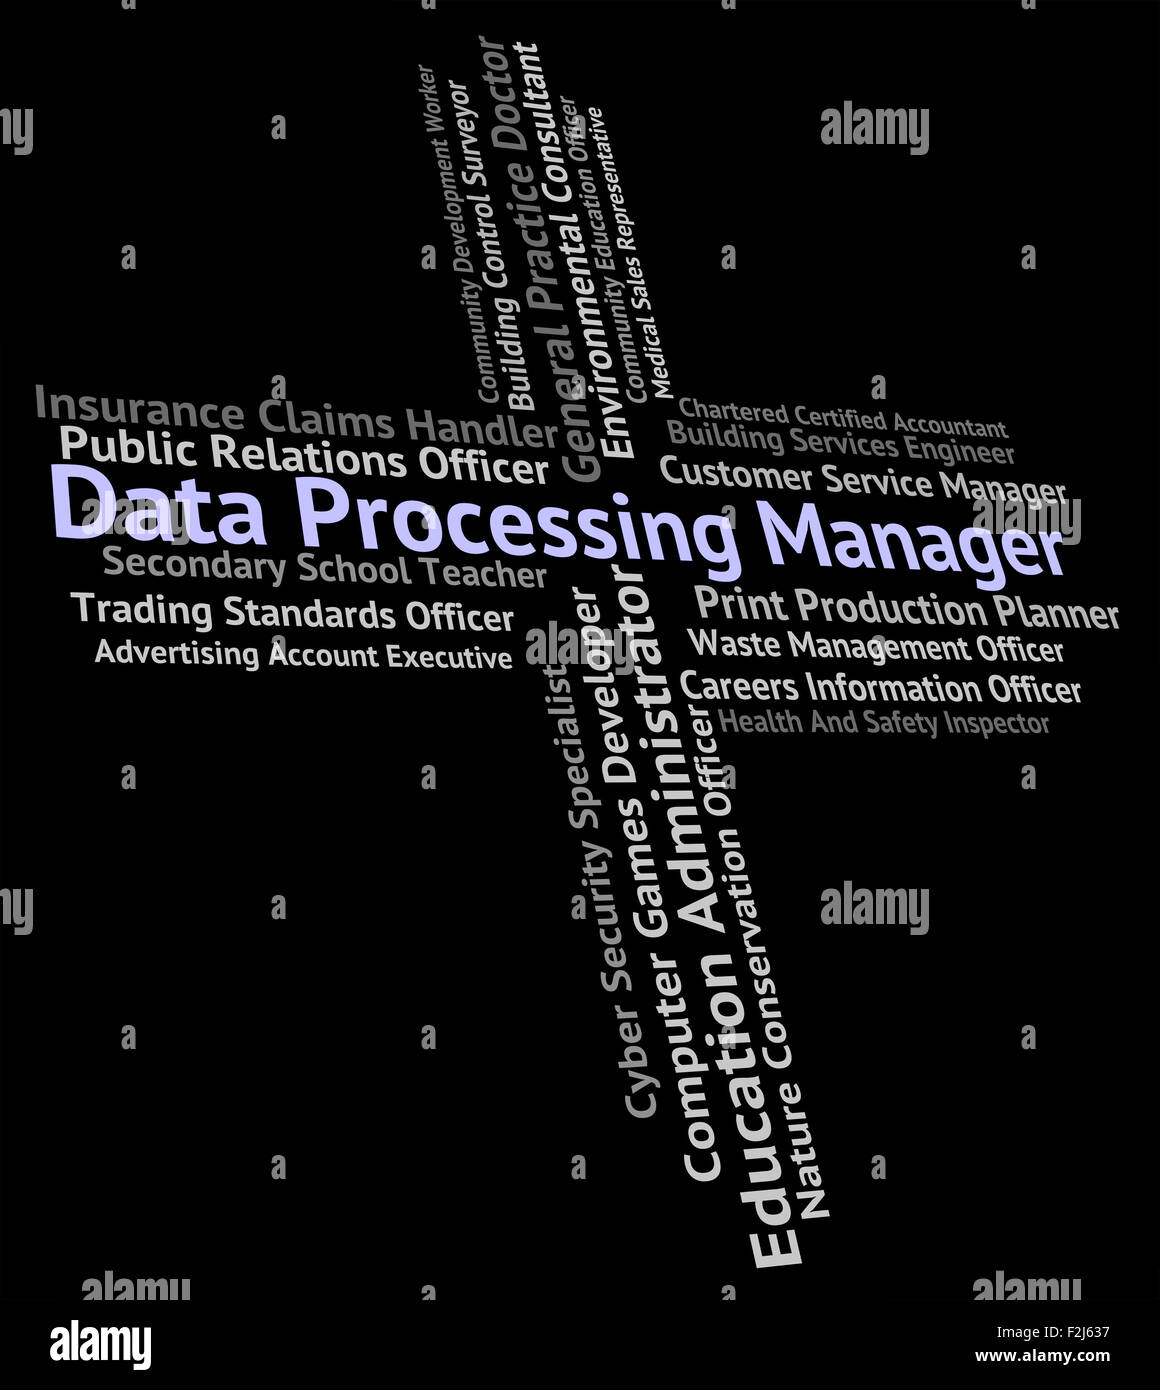 Data Processing Manager Showing Hire Jobs And Managers Stock